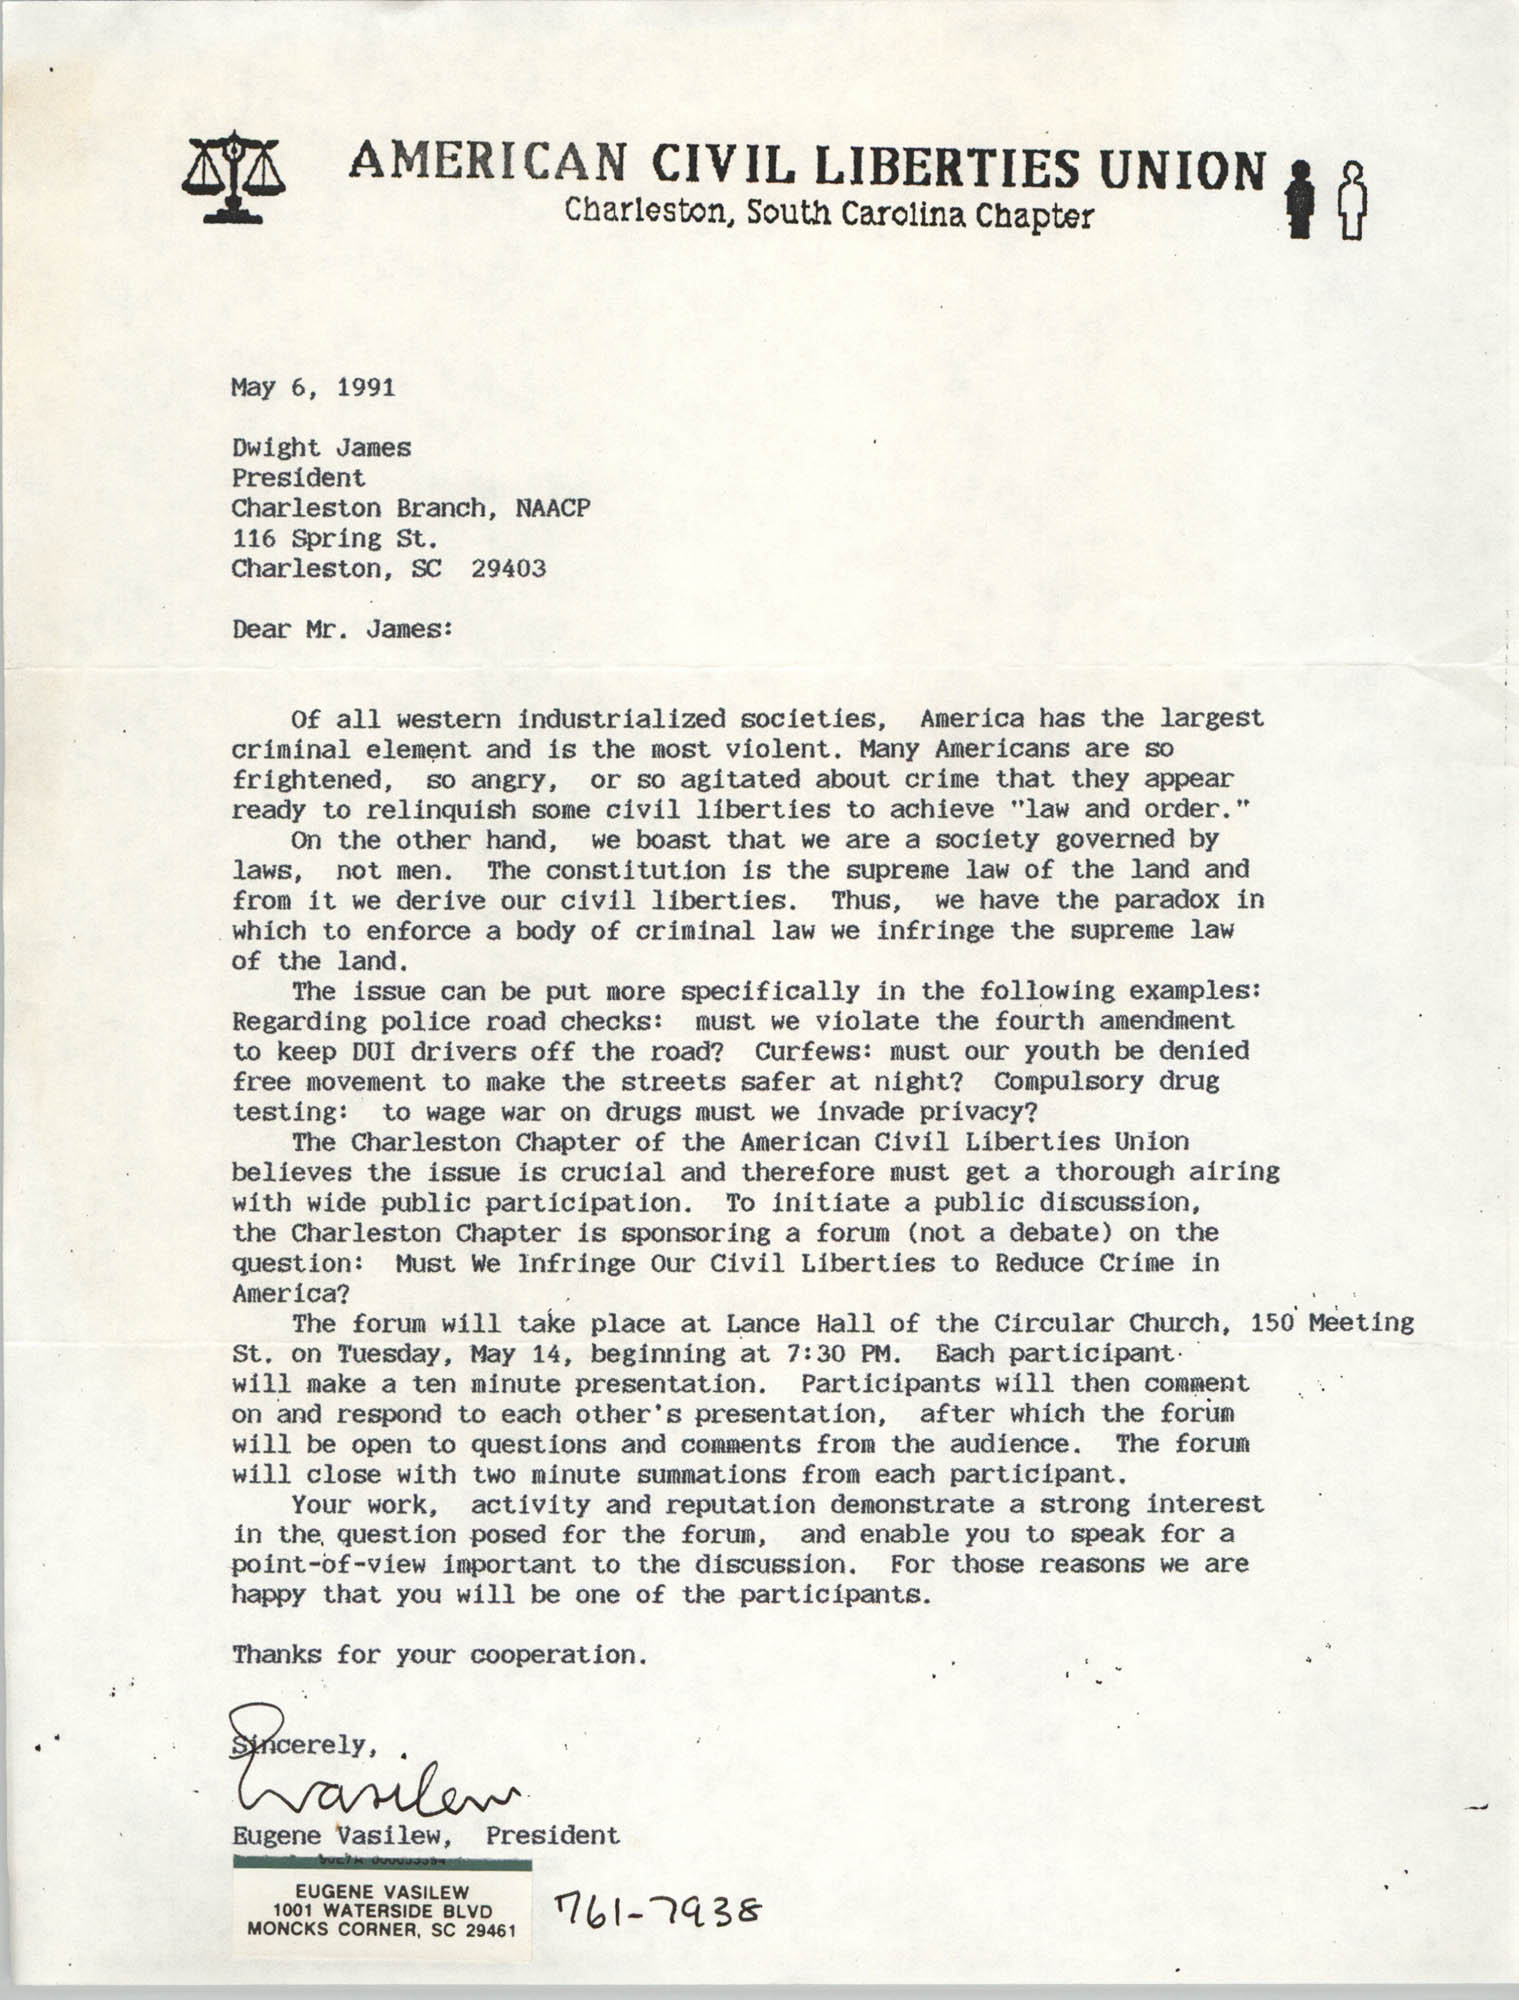 Letter from Eugene Vasilew to Dwight James, May 6, 1991